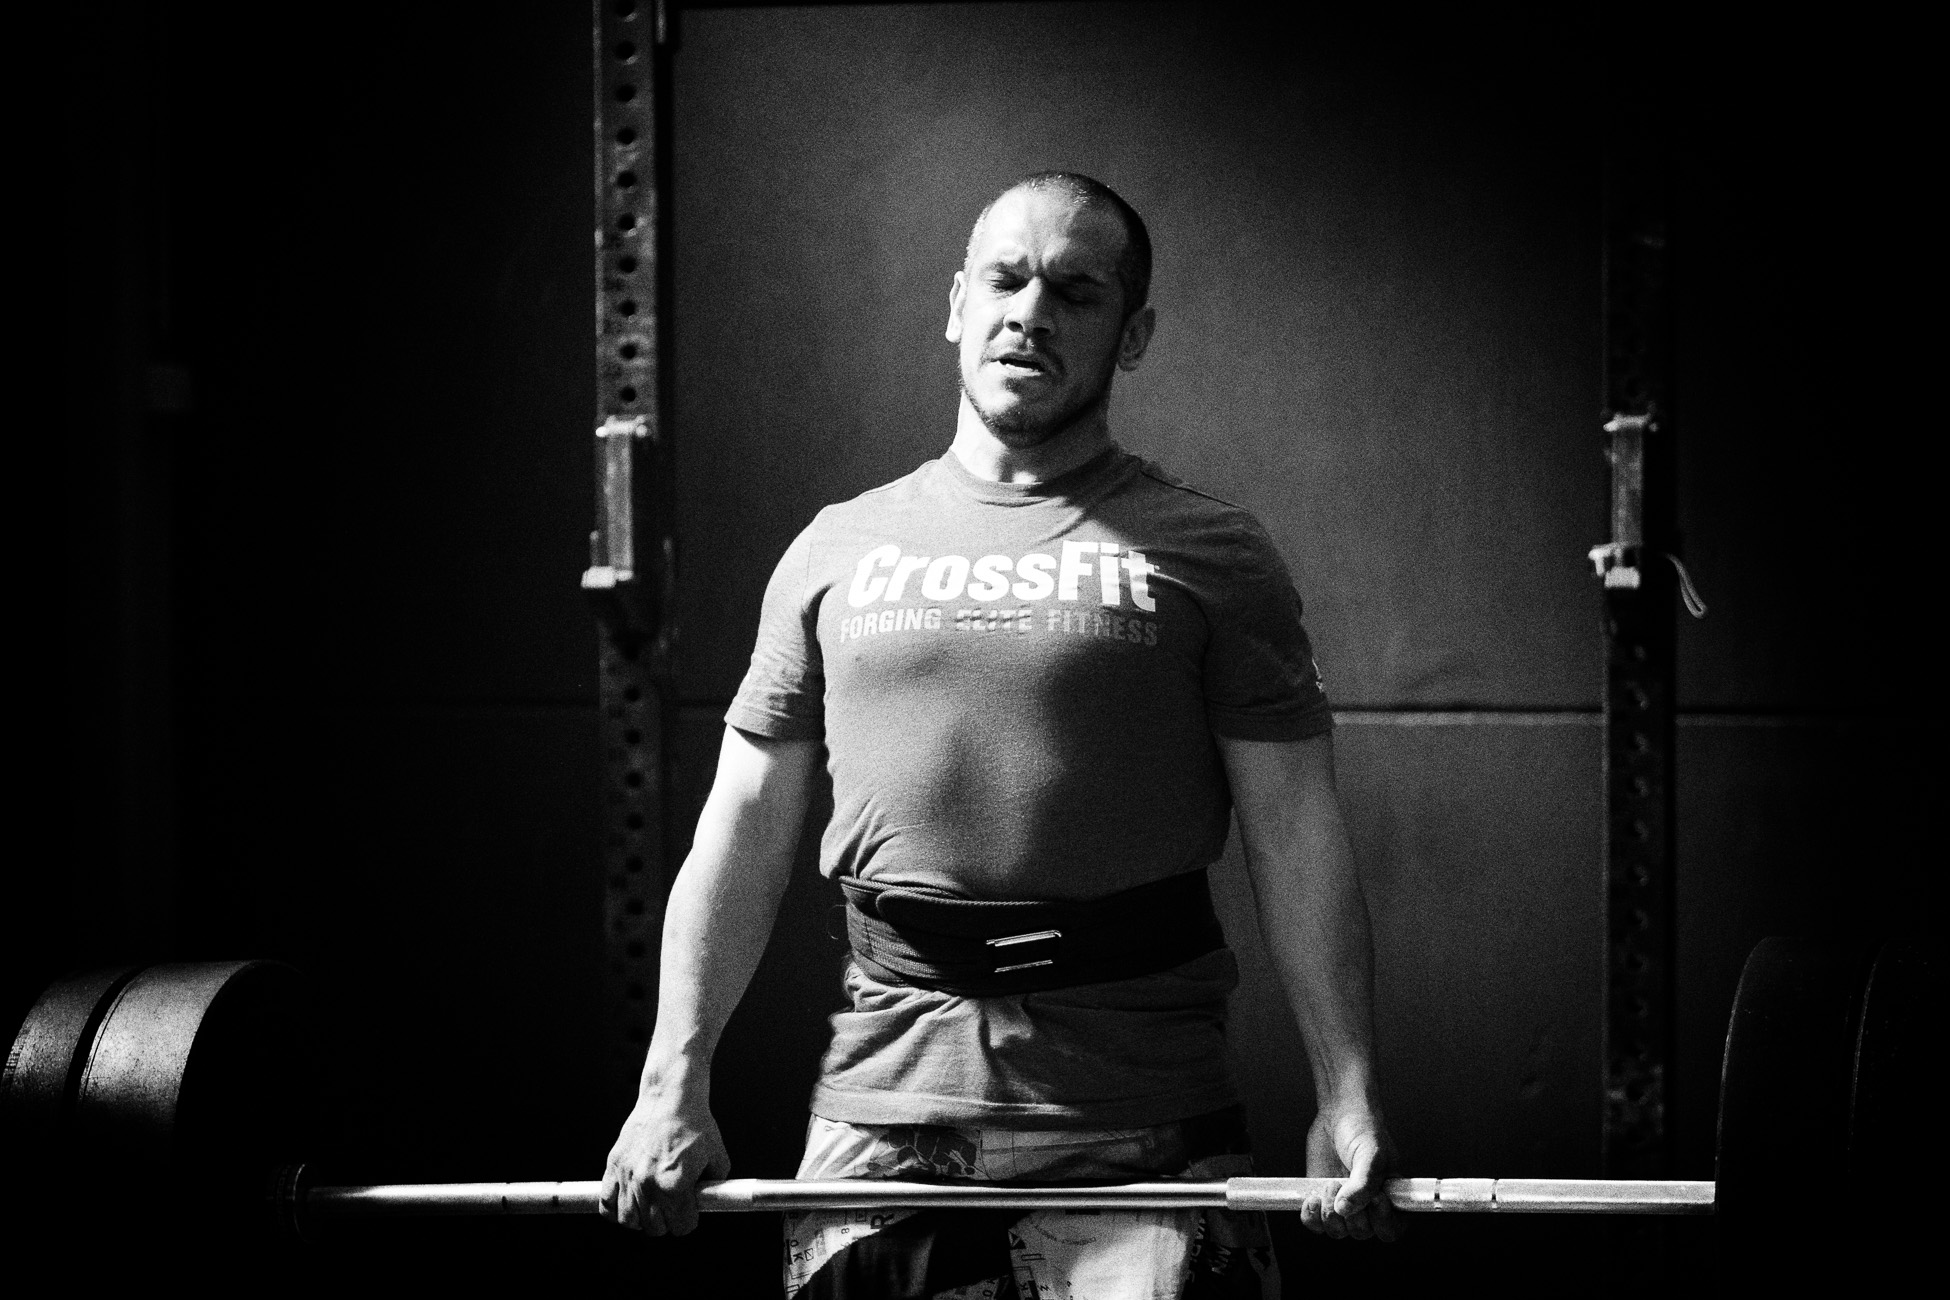 Gonçalo Barriga CrossFit Photographer - Deadlift